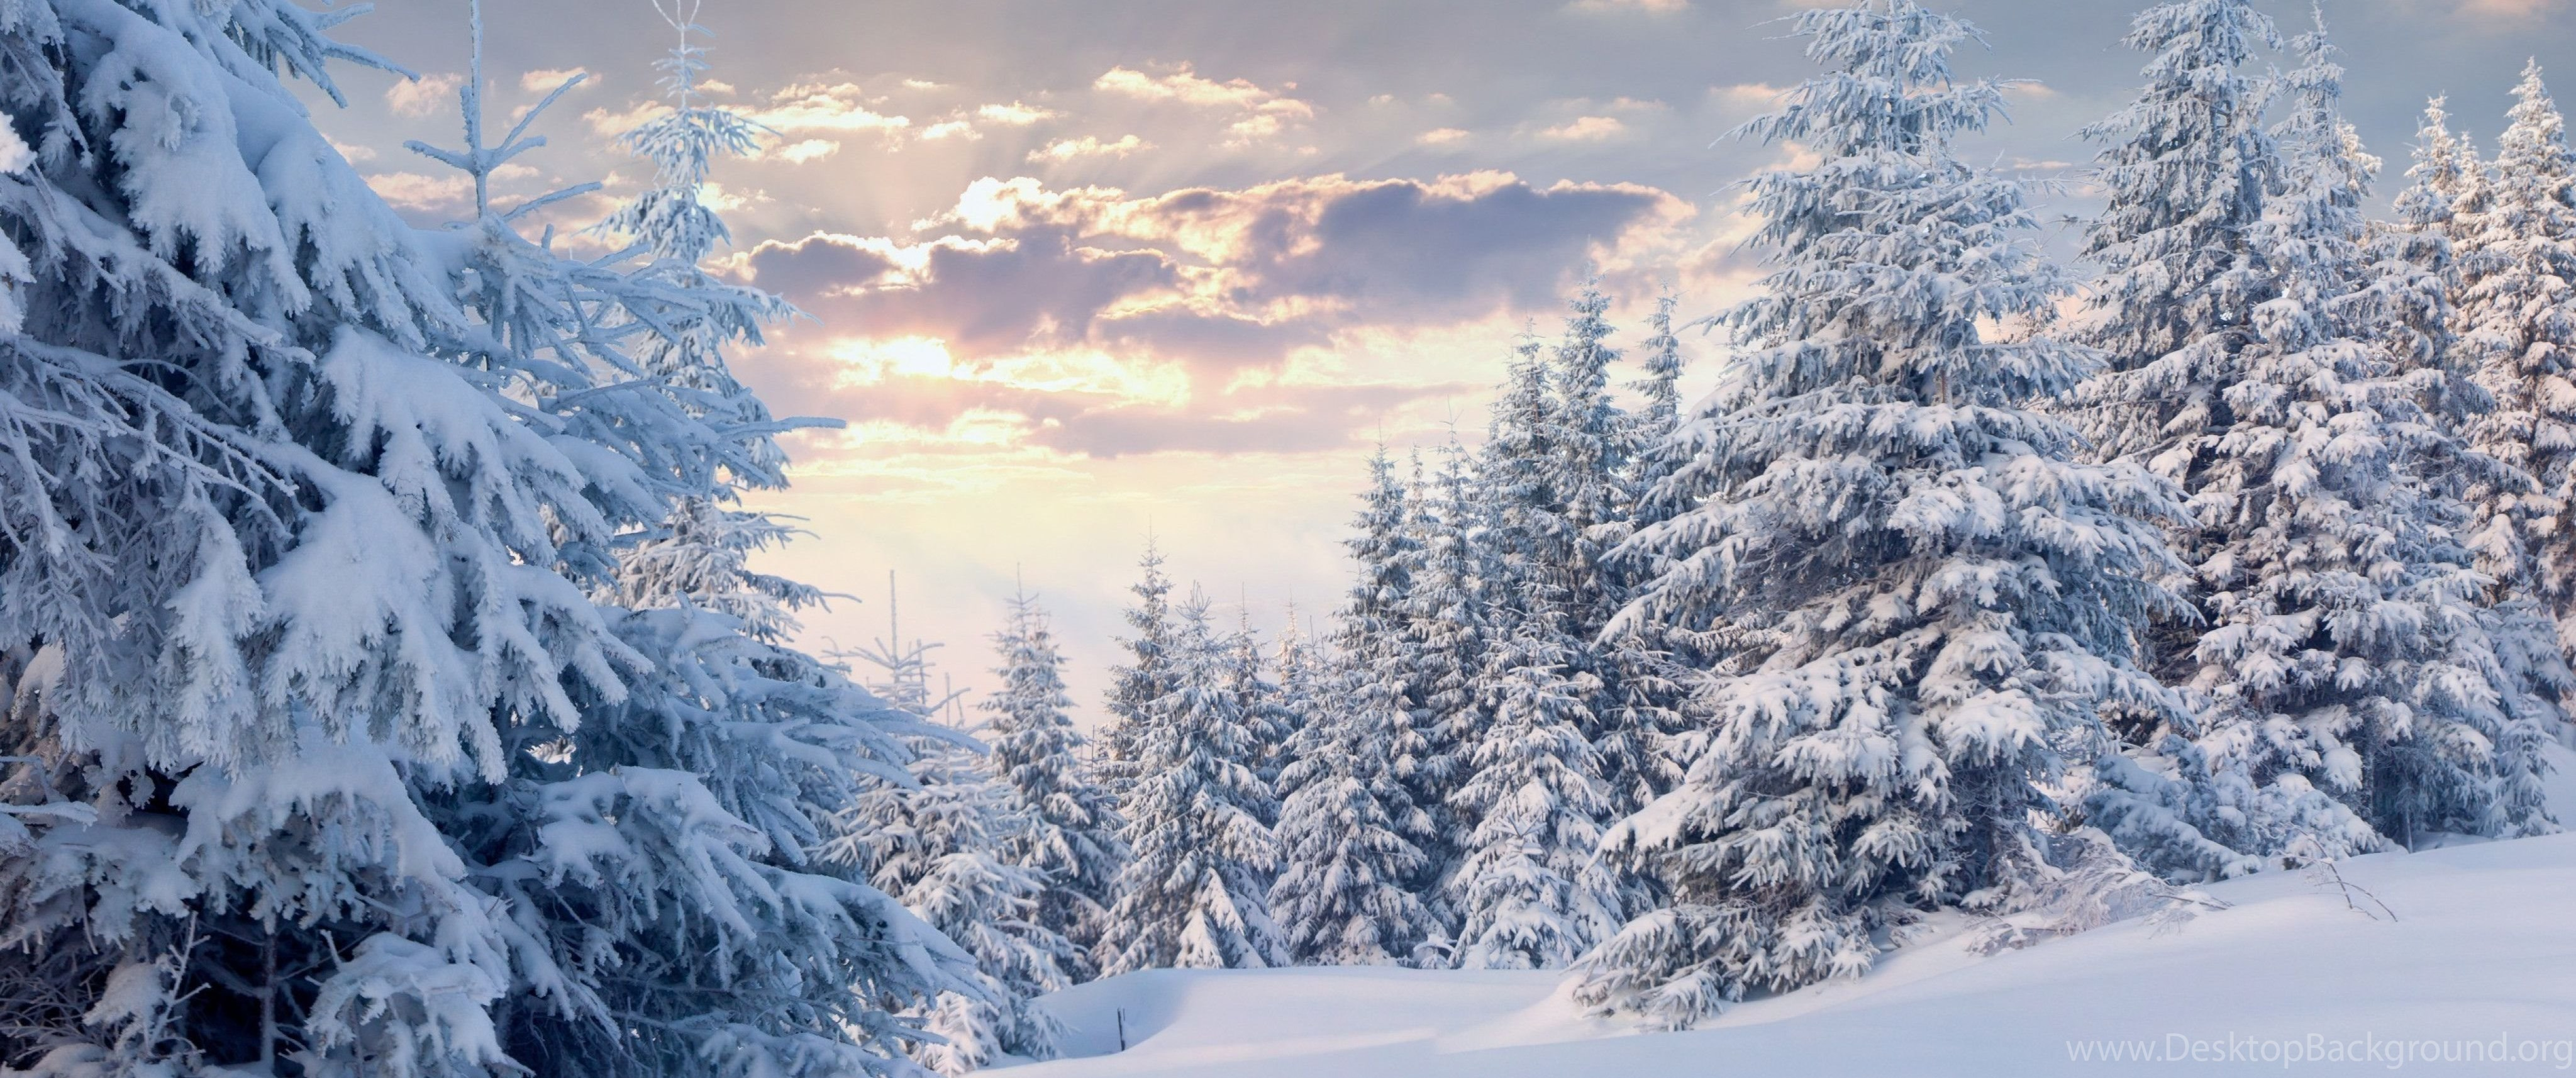 Winter Forest With Snow Wallpapers Wallpapers 4K